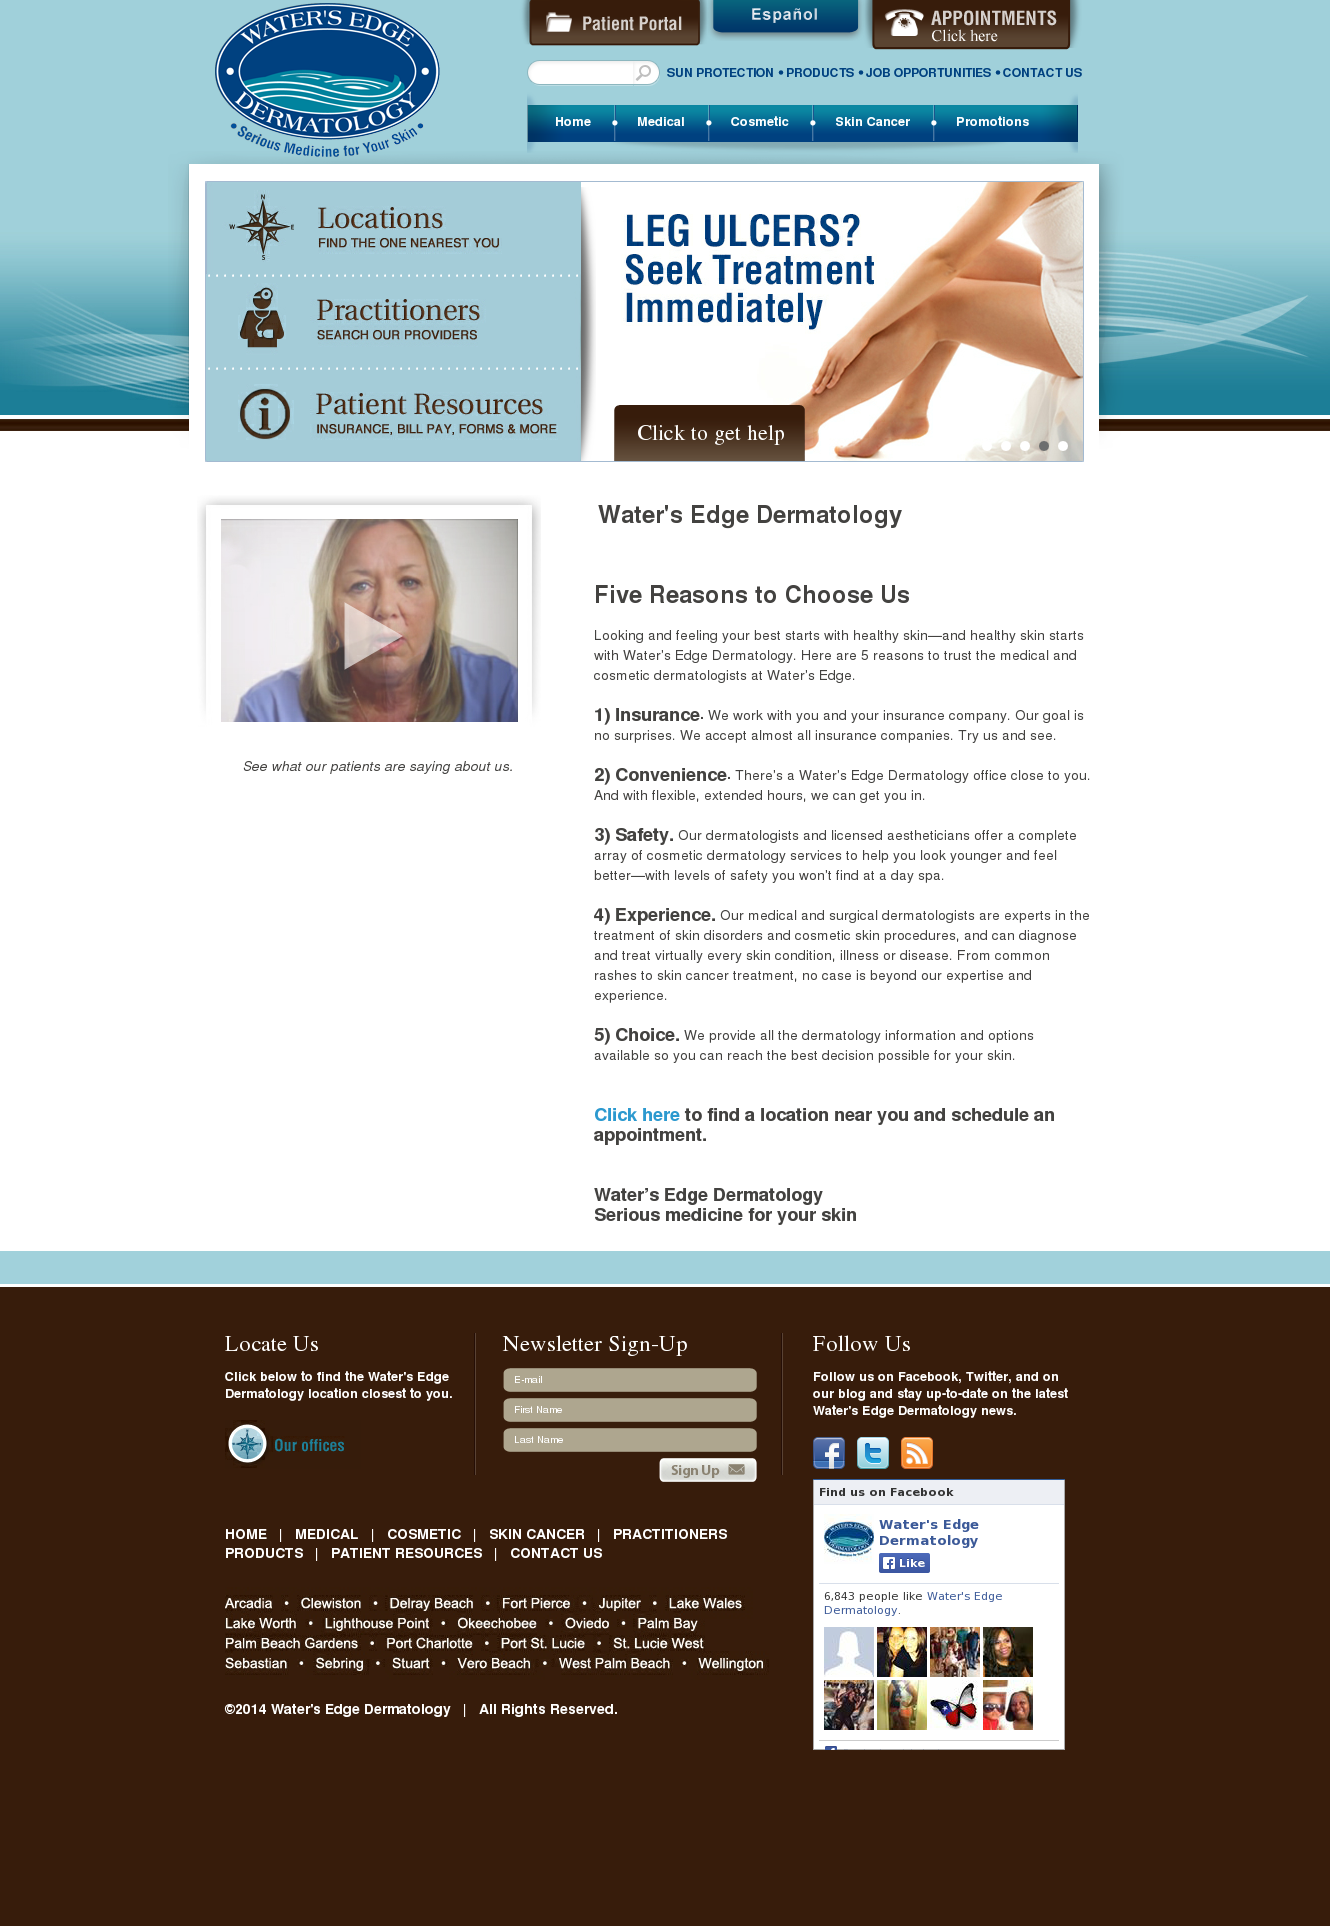 Water's Edge Dermatology Competitors, Revenue and Employees